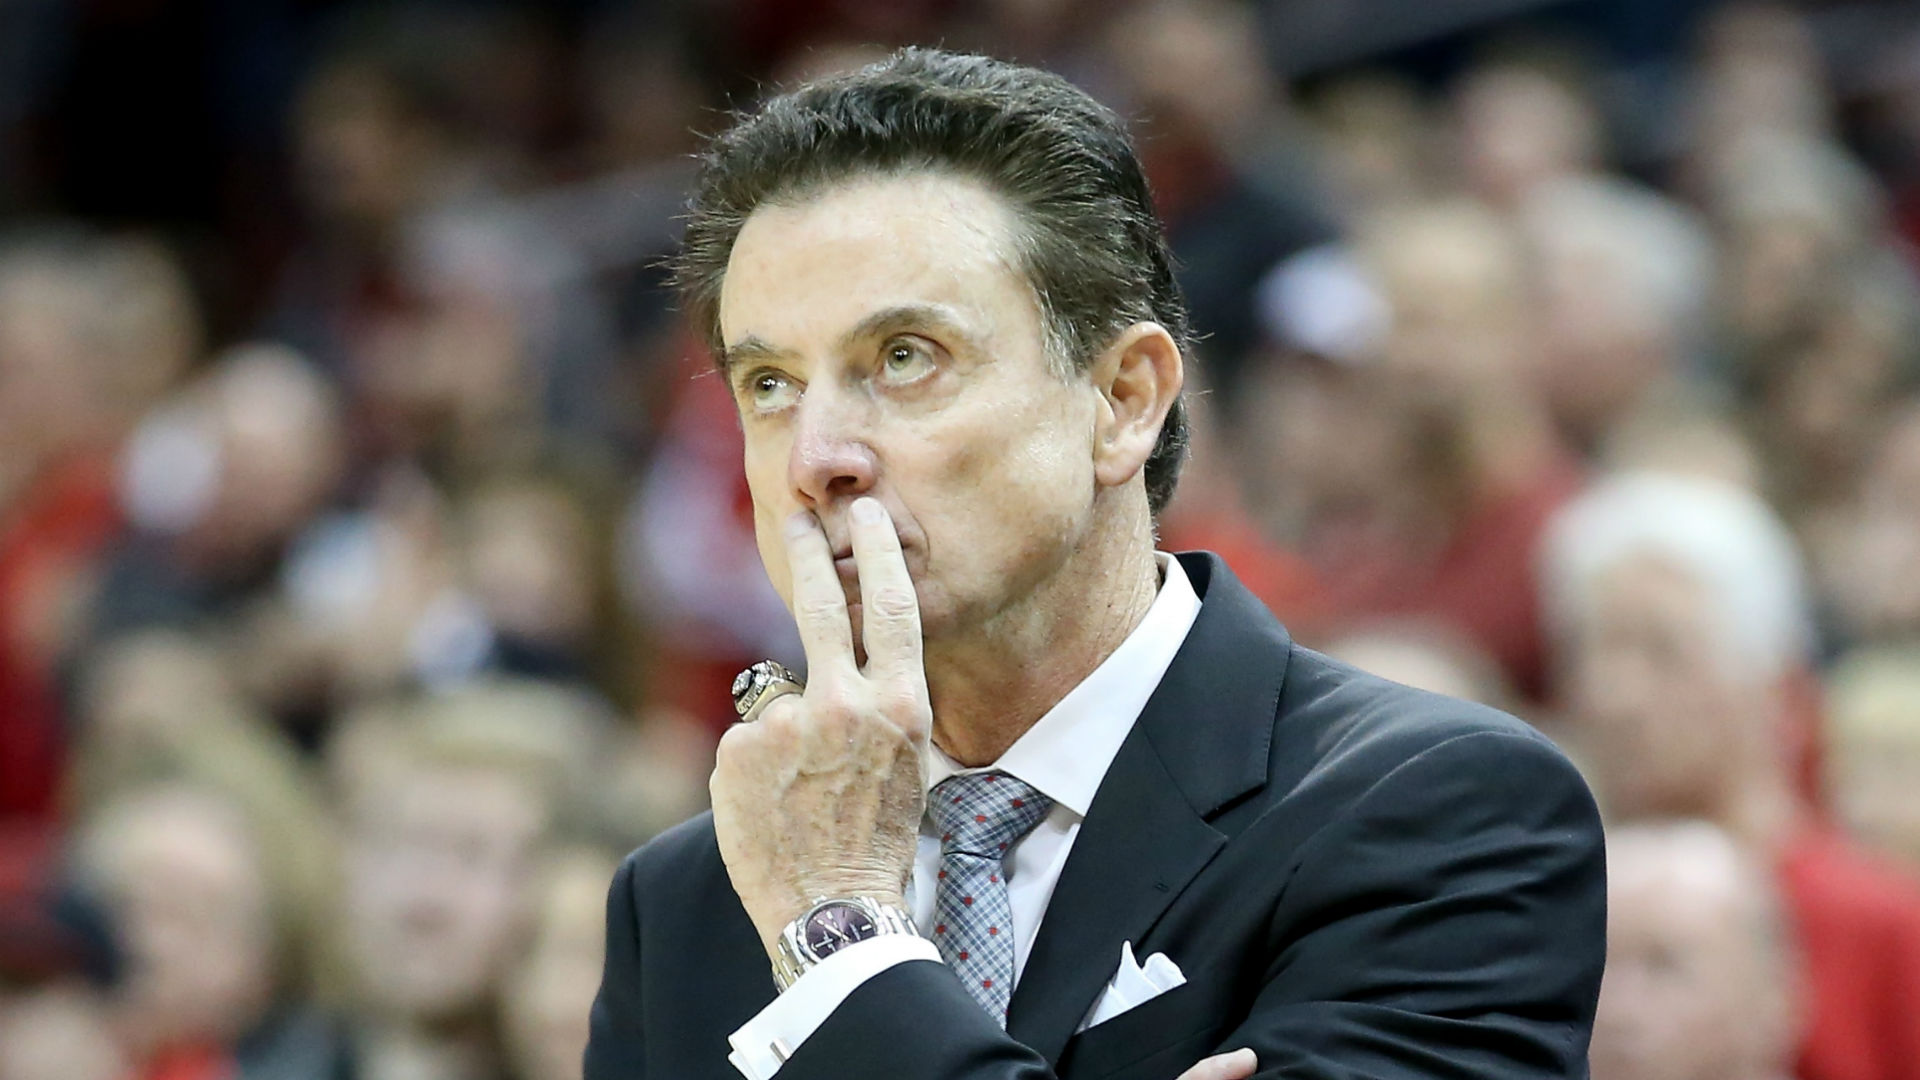 Rick Pitino wants to coach again, but looks to 'build a different life that doesn't include coaching'